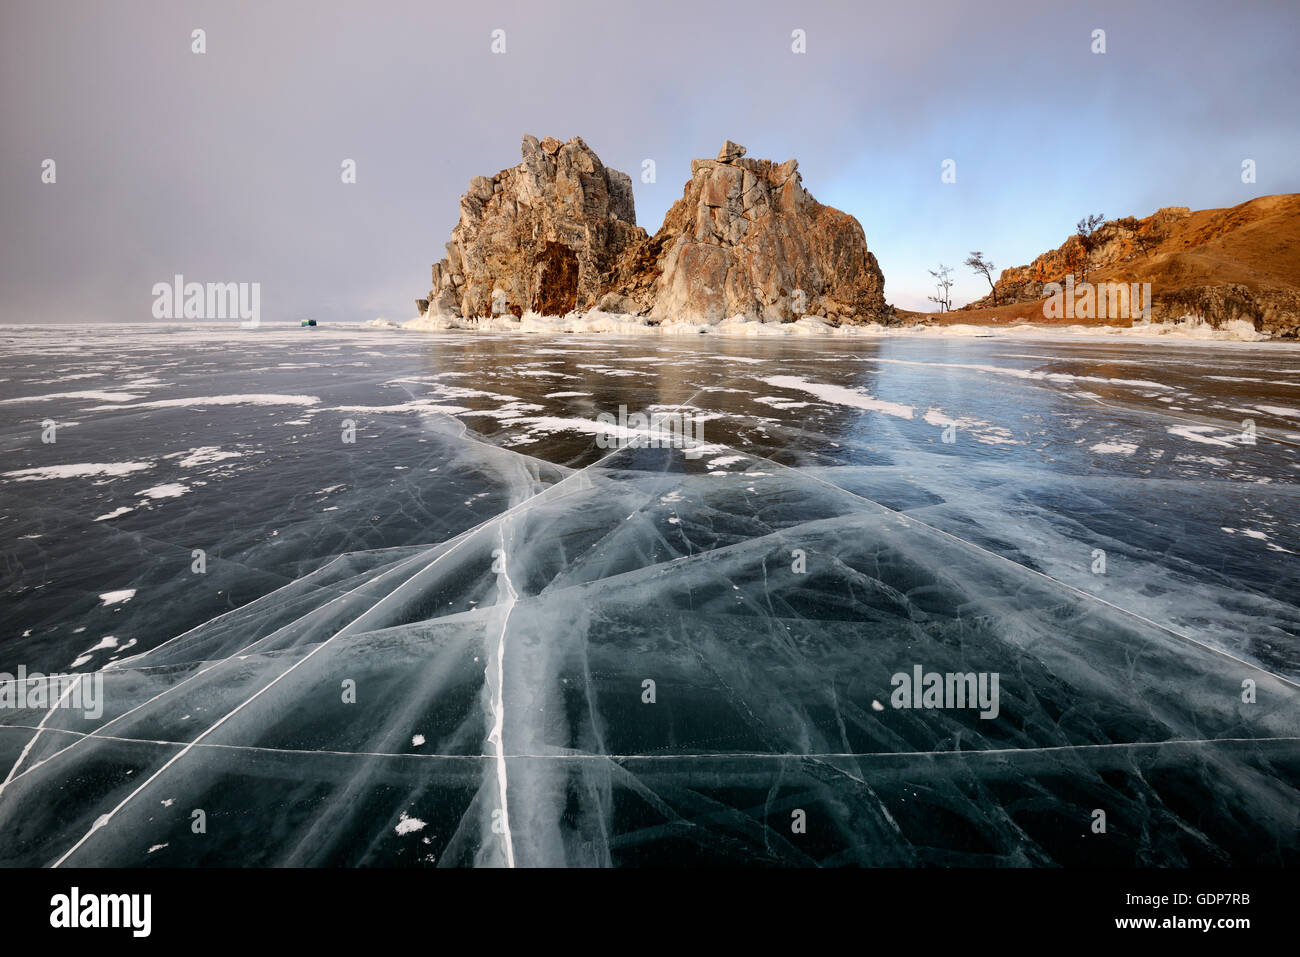 View of frozen ice and Shamanka Rock on Burkhan Cape, Baikal Lake, Olkhon Island, Siberia, Russia - Stock Image